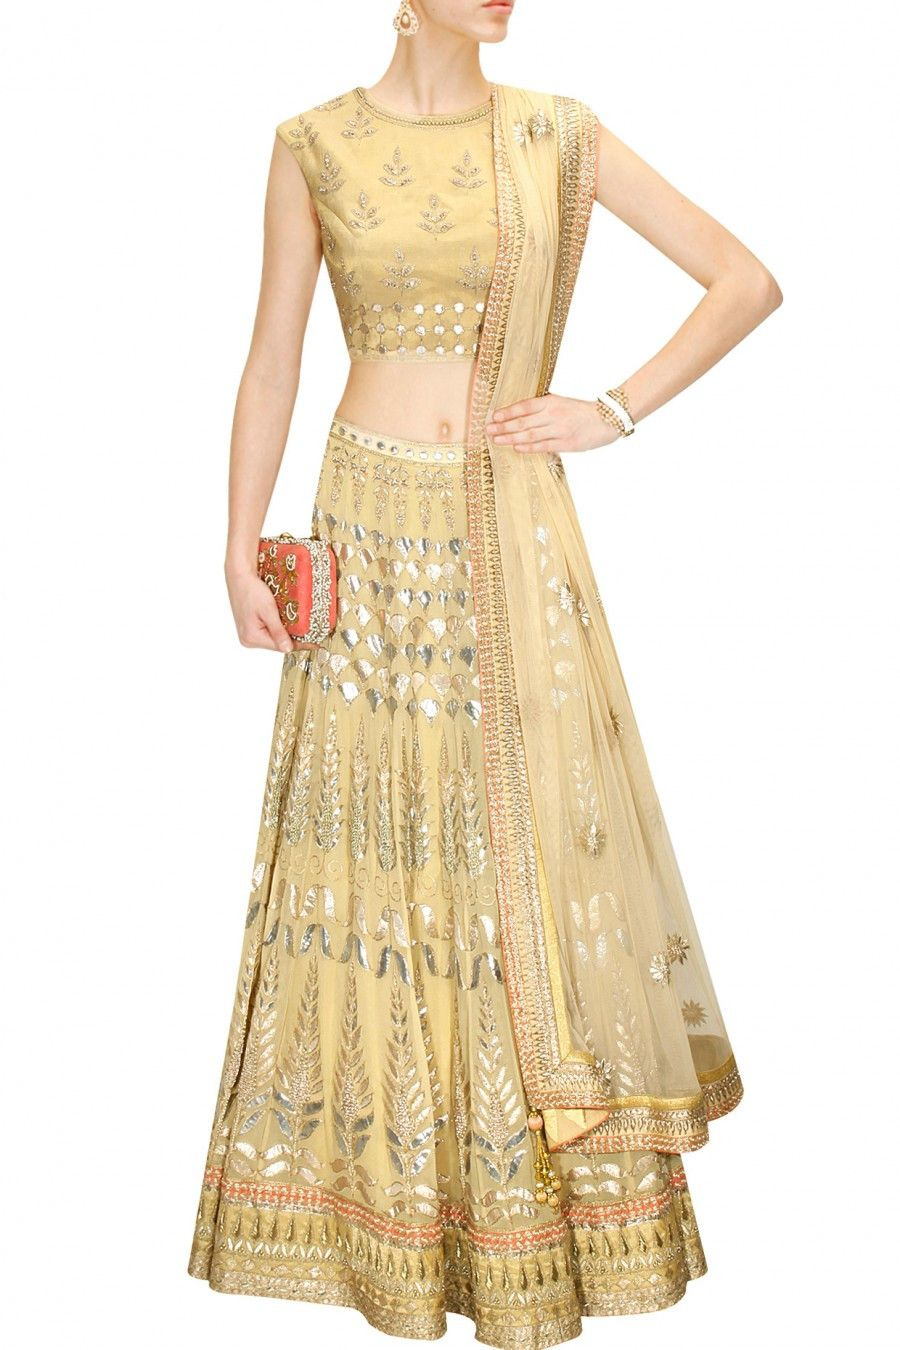 fc836b0e27f This Golden color Bridal Lehenga Choli is featuring in georgette fabric  embellished with traditional gota patti embroidery. This Golden color  Bridal Lehenga ...